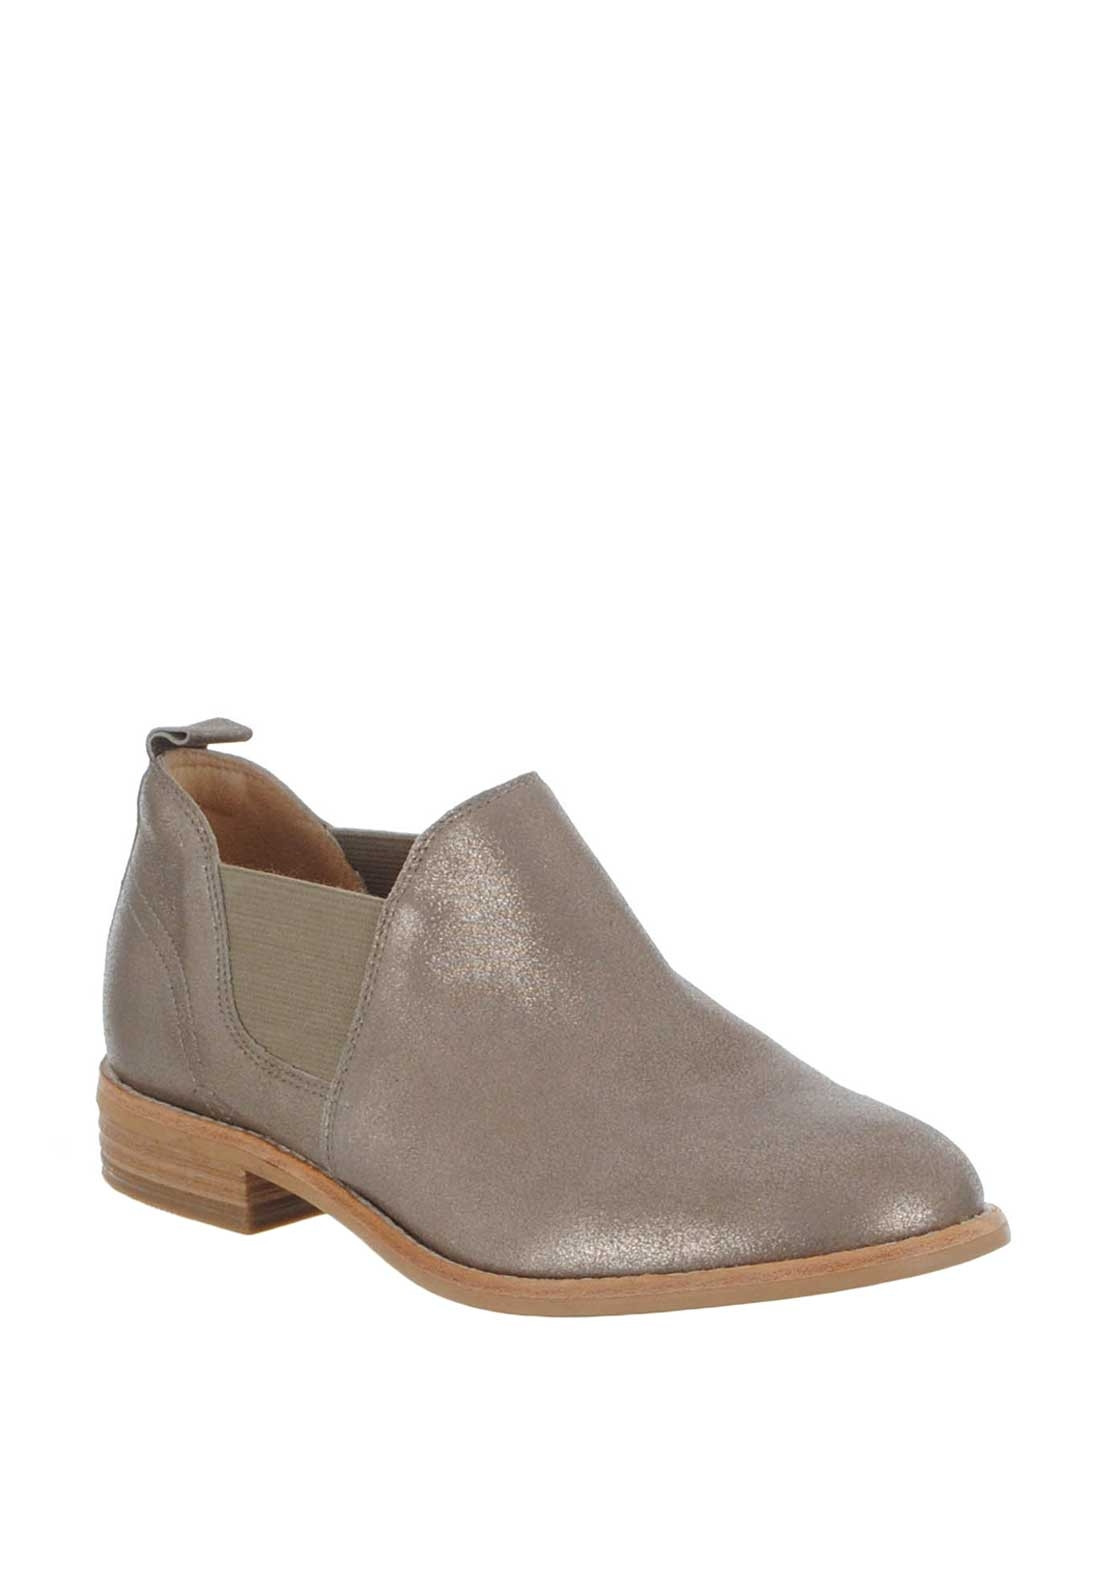 new selection nice cheap later Clarks Womens Edenvale Page Shimmer Suede Boots, Pewter